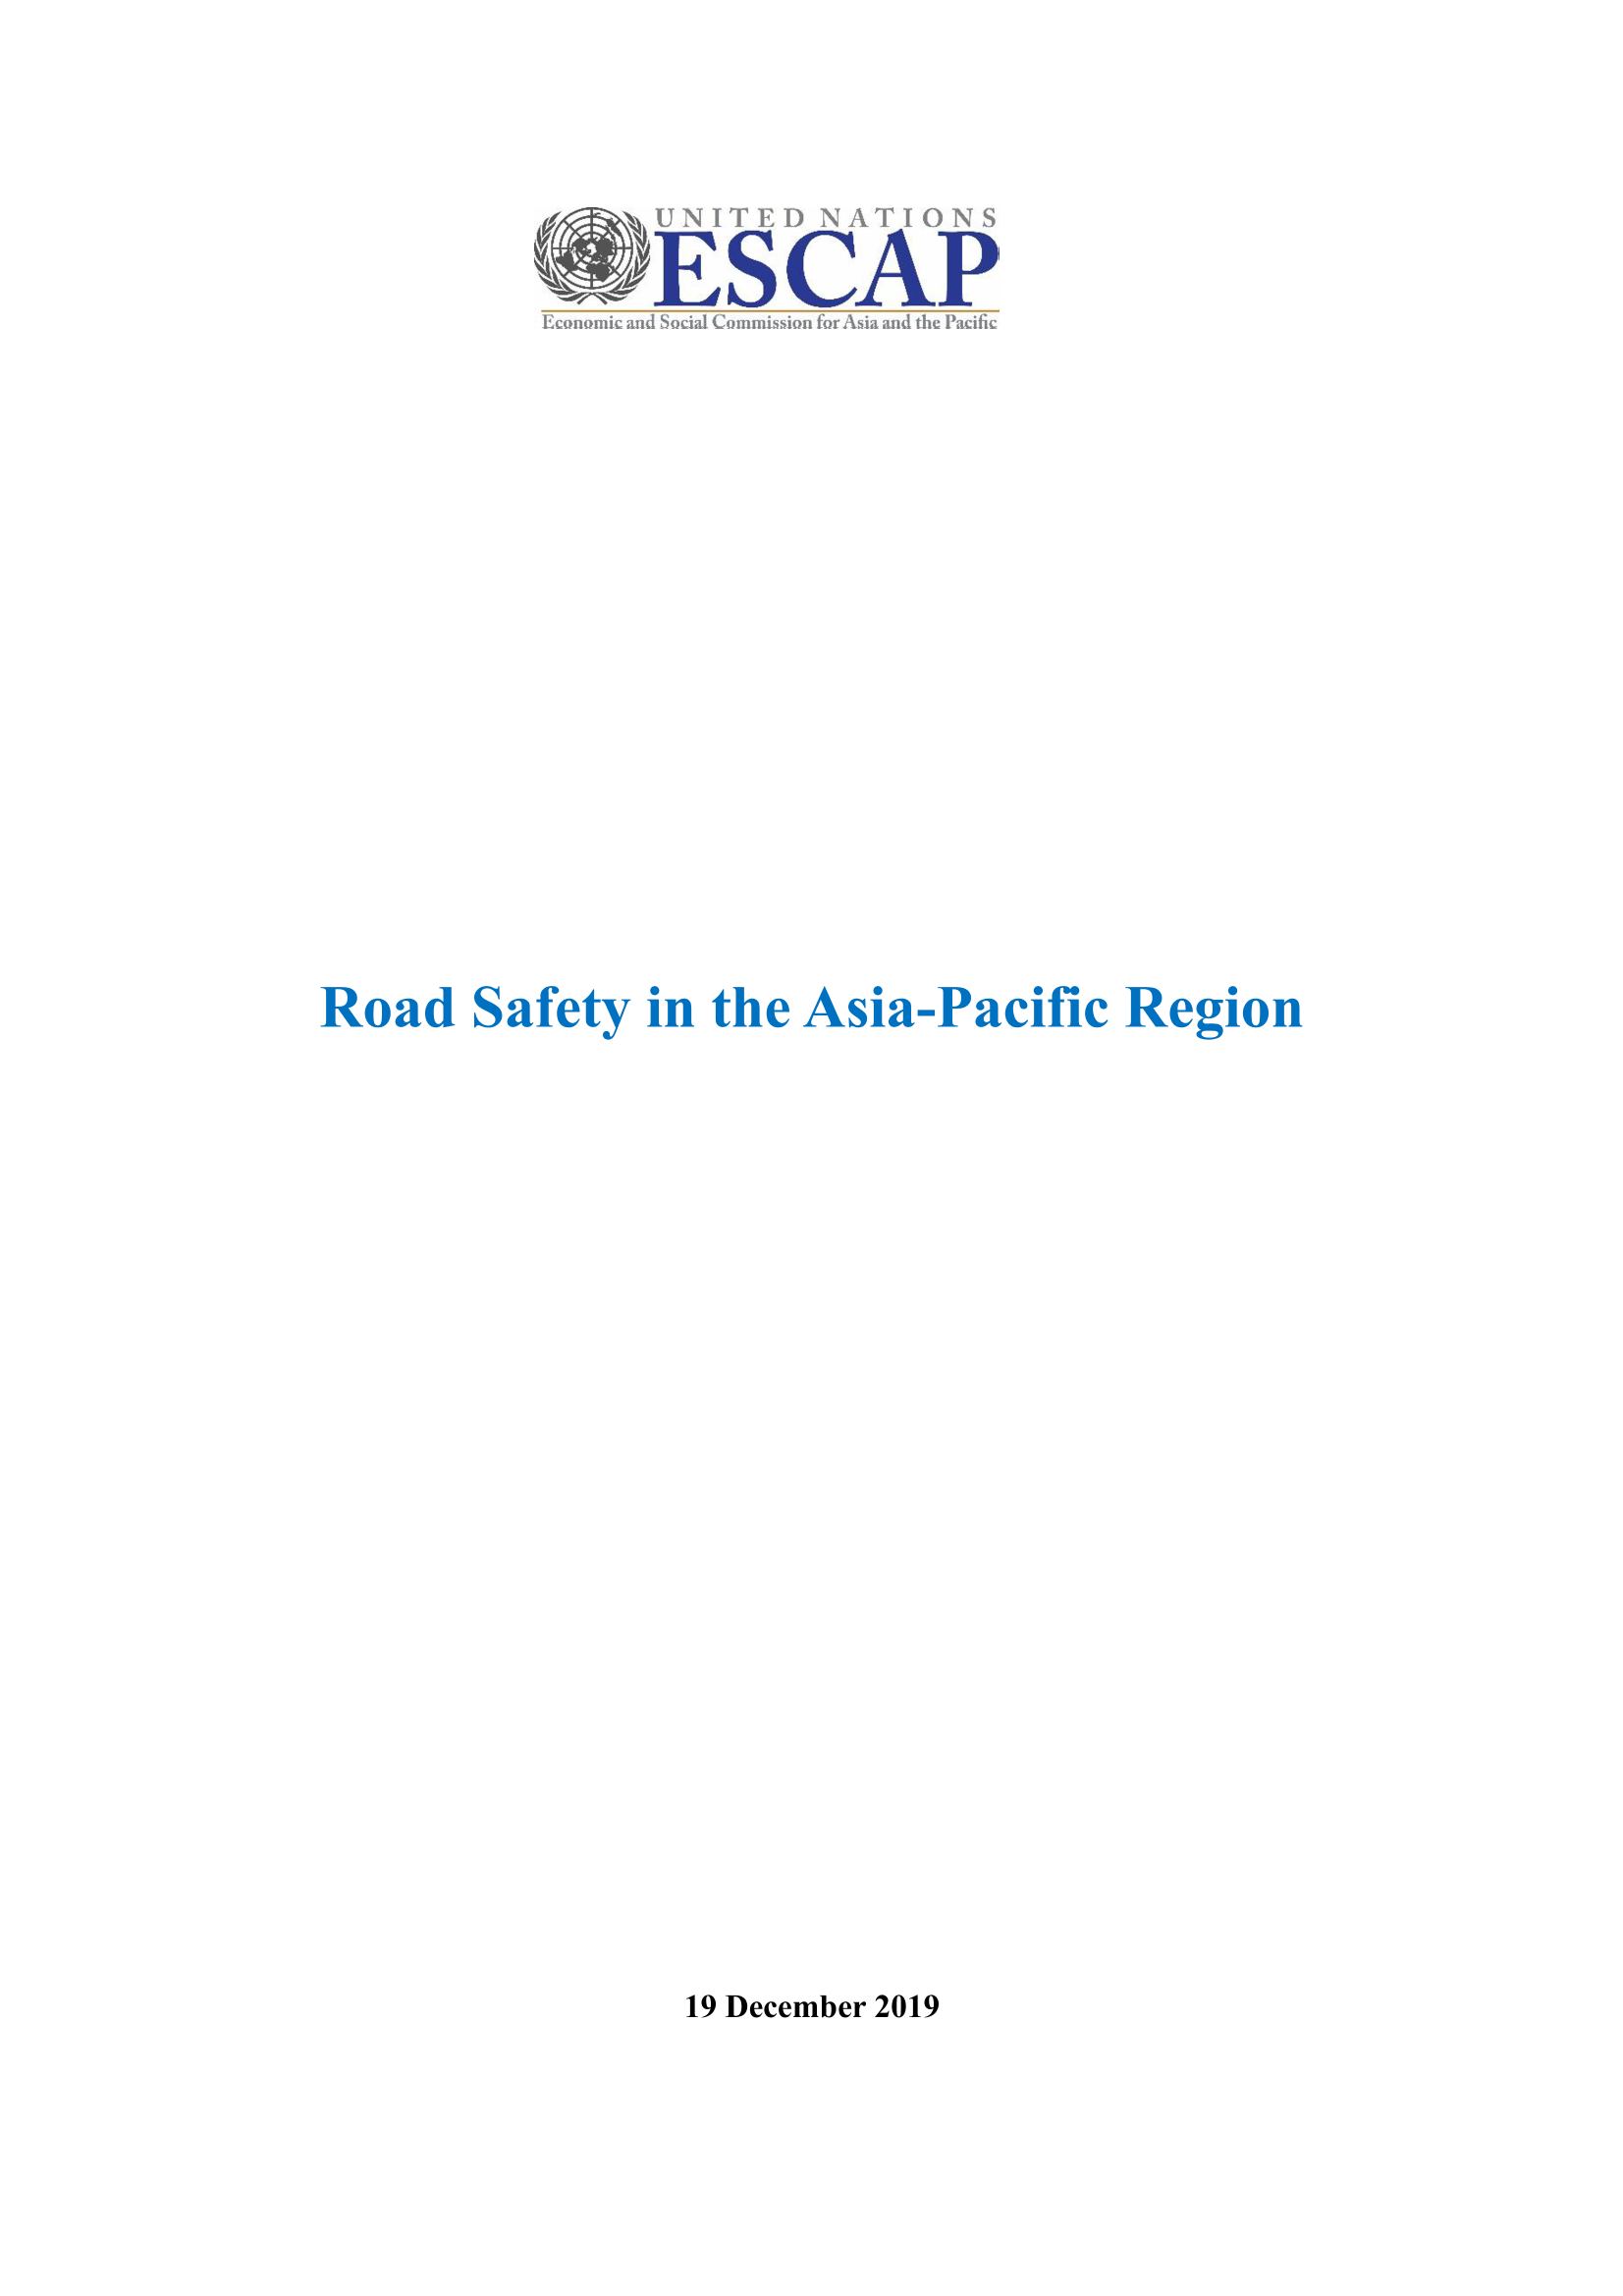 Road Safety in the Asia-Pacific Region